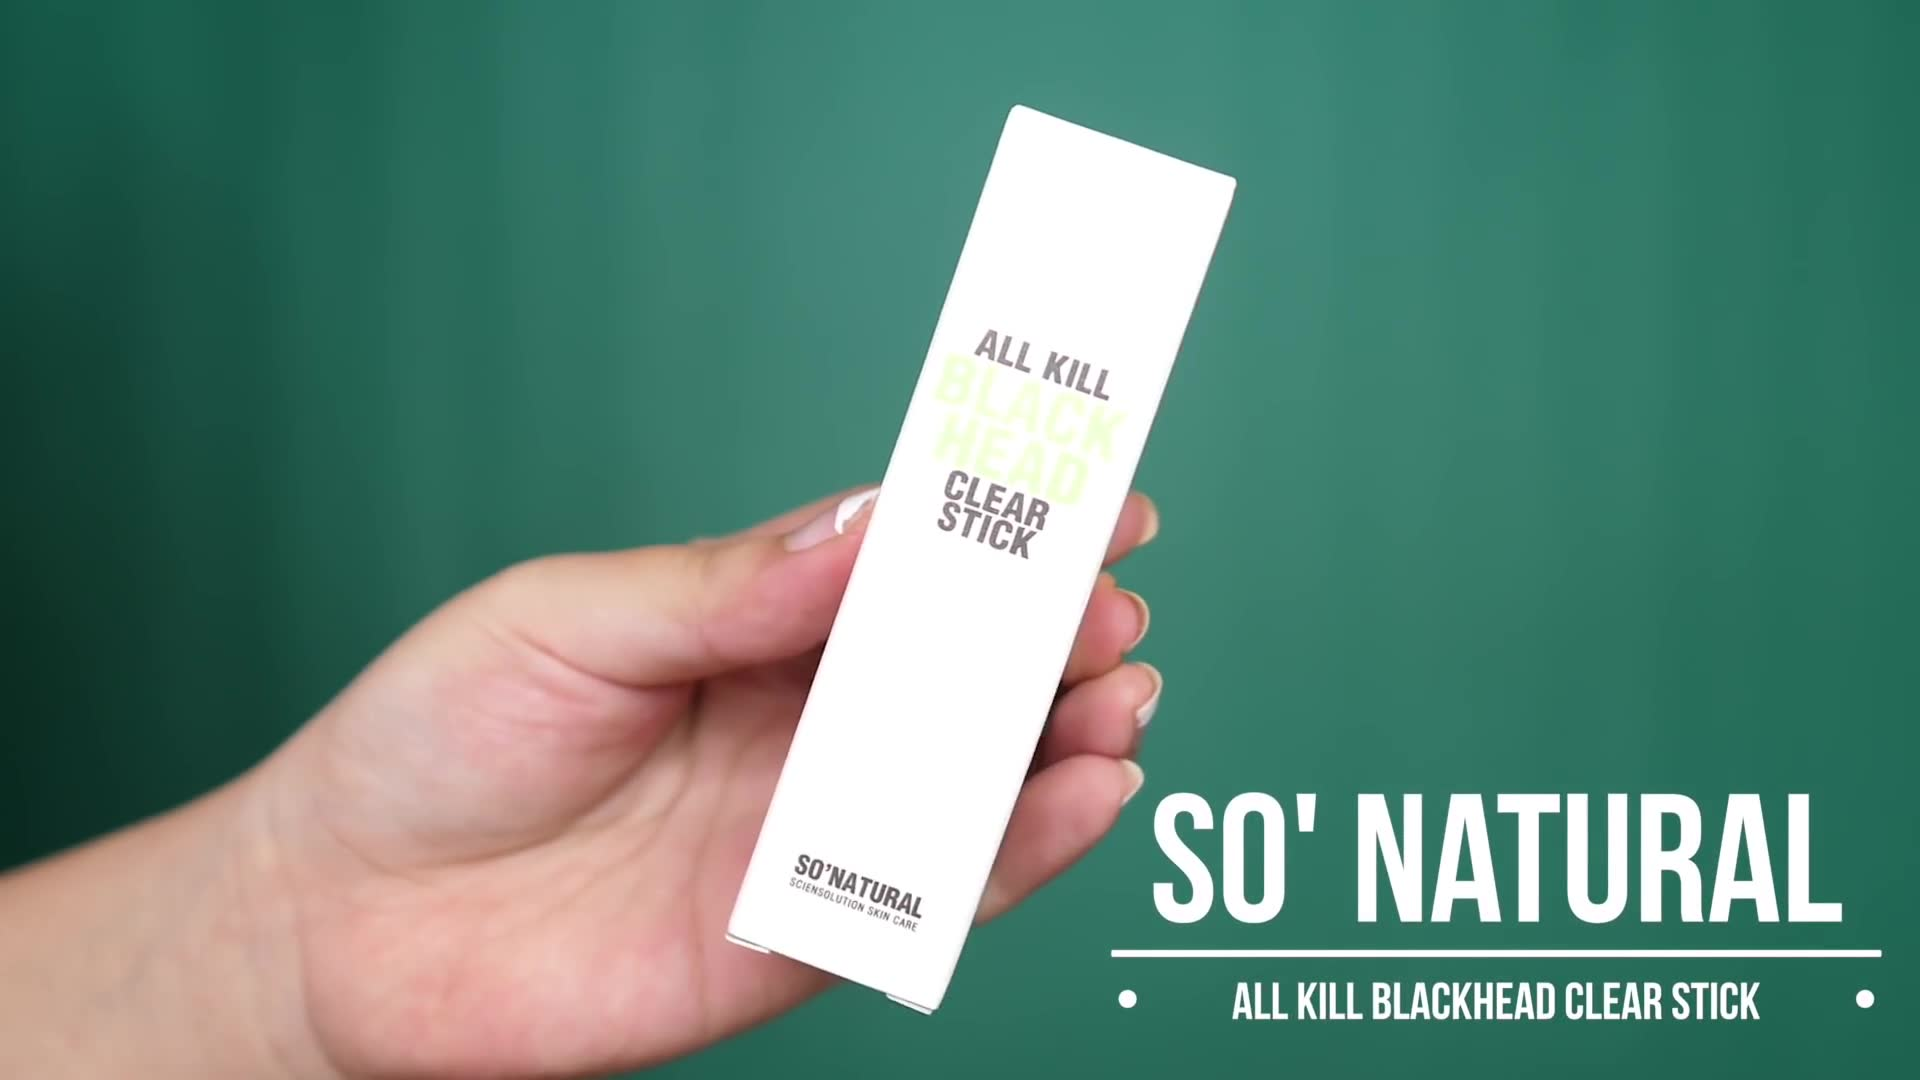 heyitsfeiii Episode 128: All Kill Blackhead Clear Stick Tested on a Teenager!